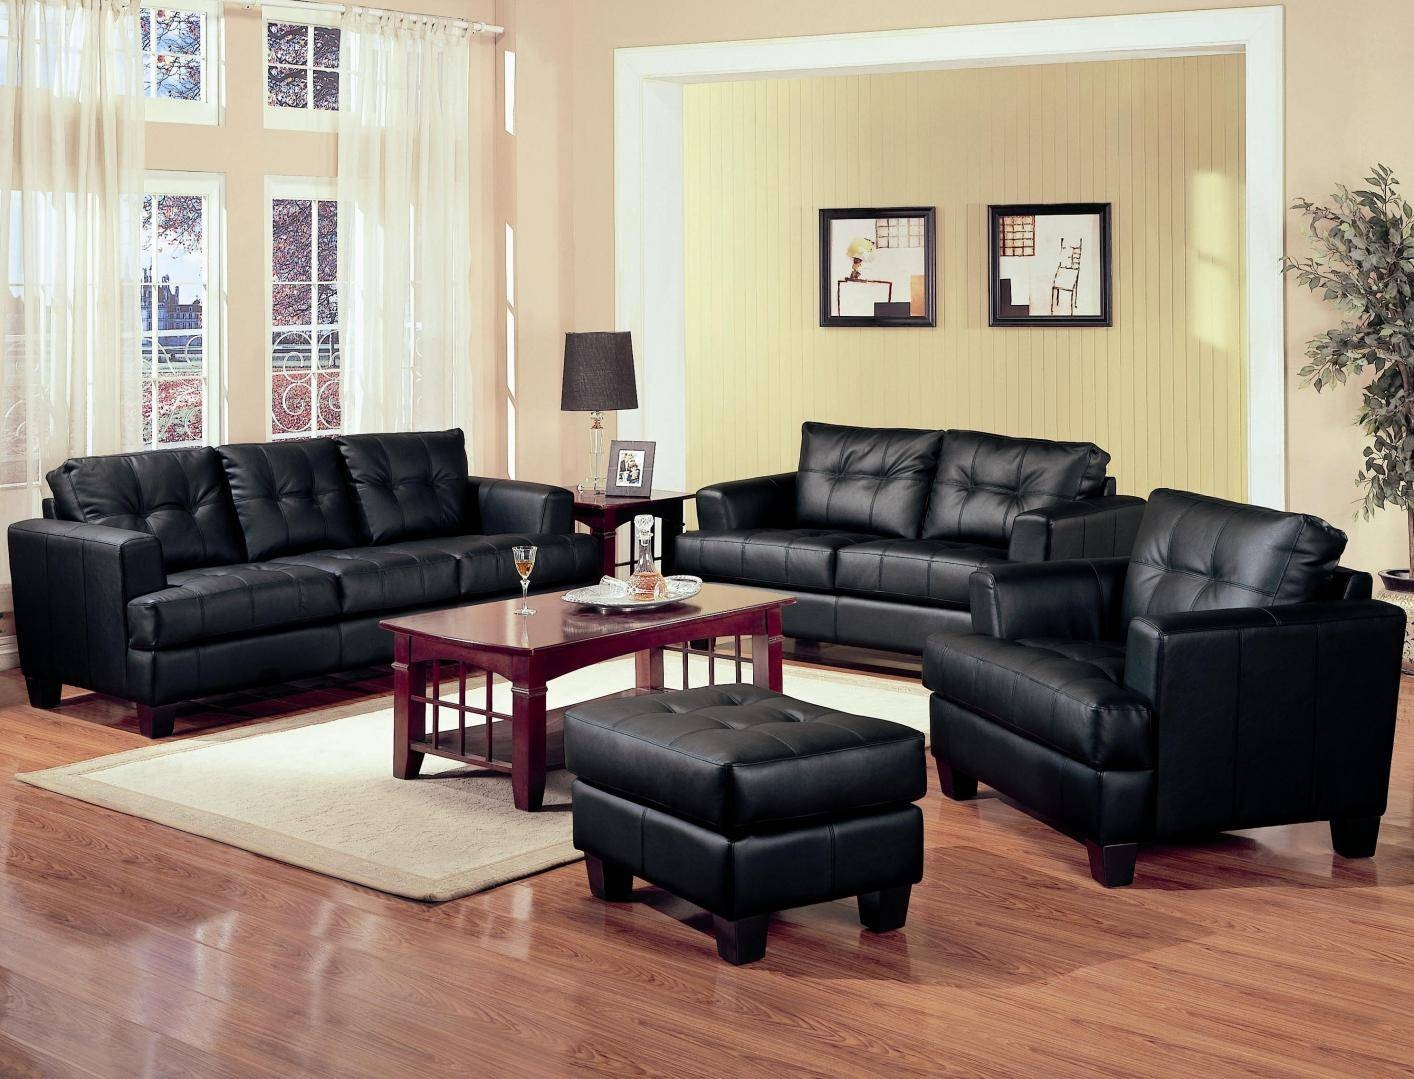 Samuel Black Leather Sofa - Steal-A-Sofa Furniture Outlet Los pertaining to Black Leather Sofas and Loveseats (Image 13 of 15)